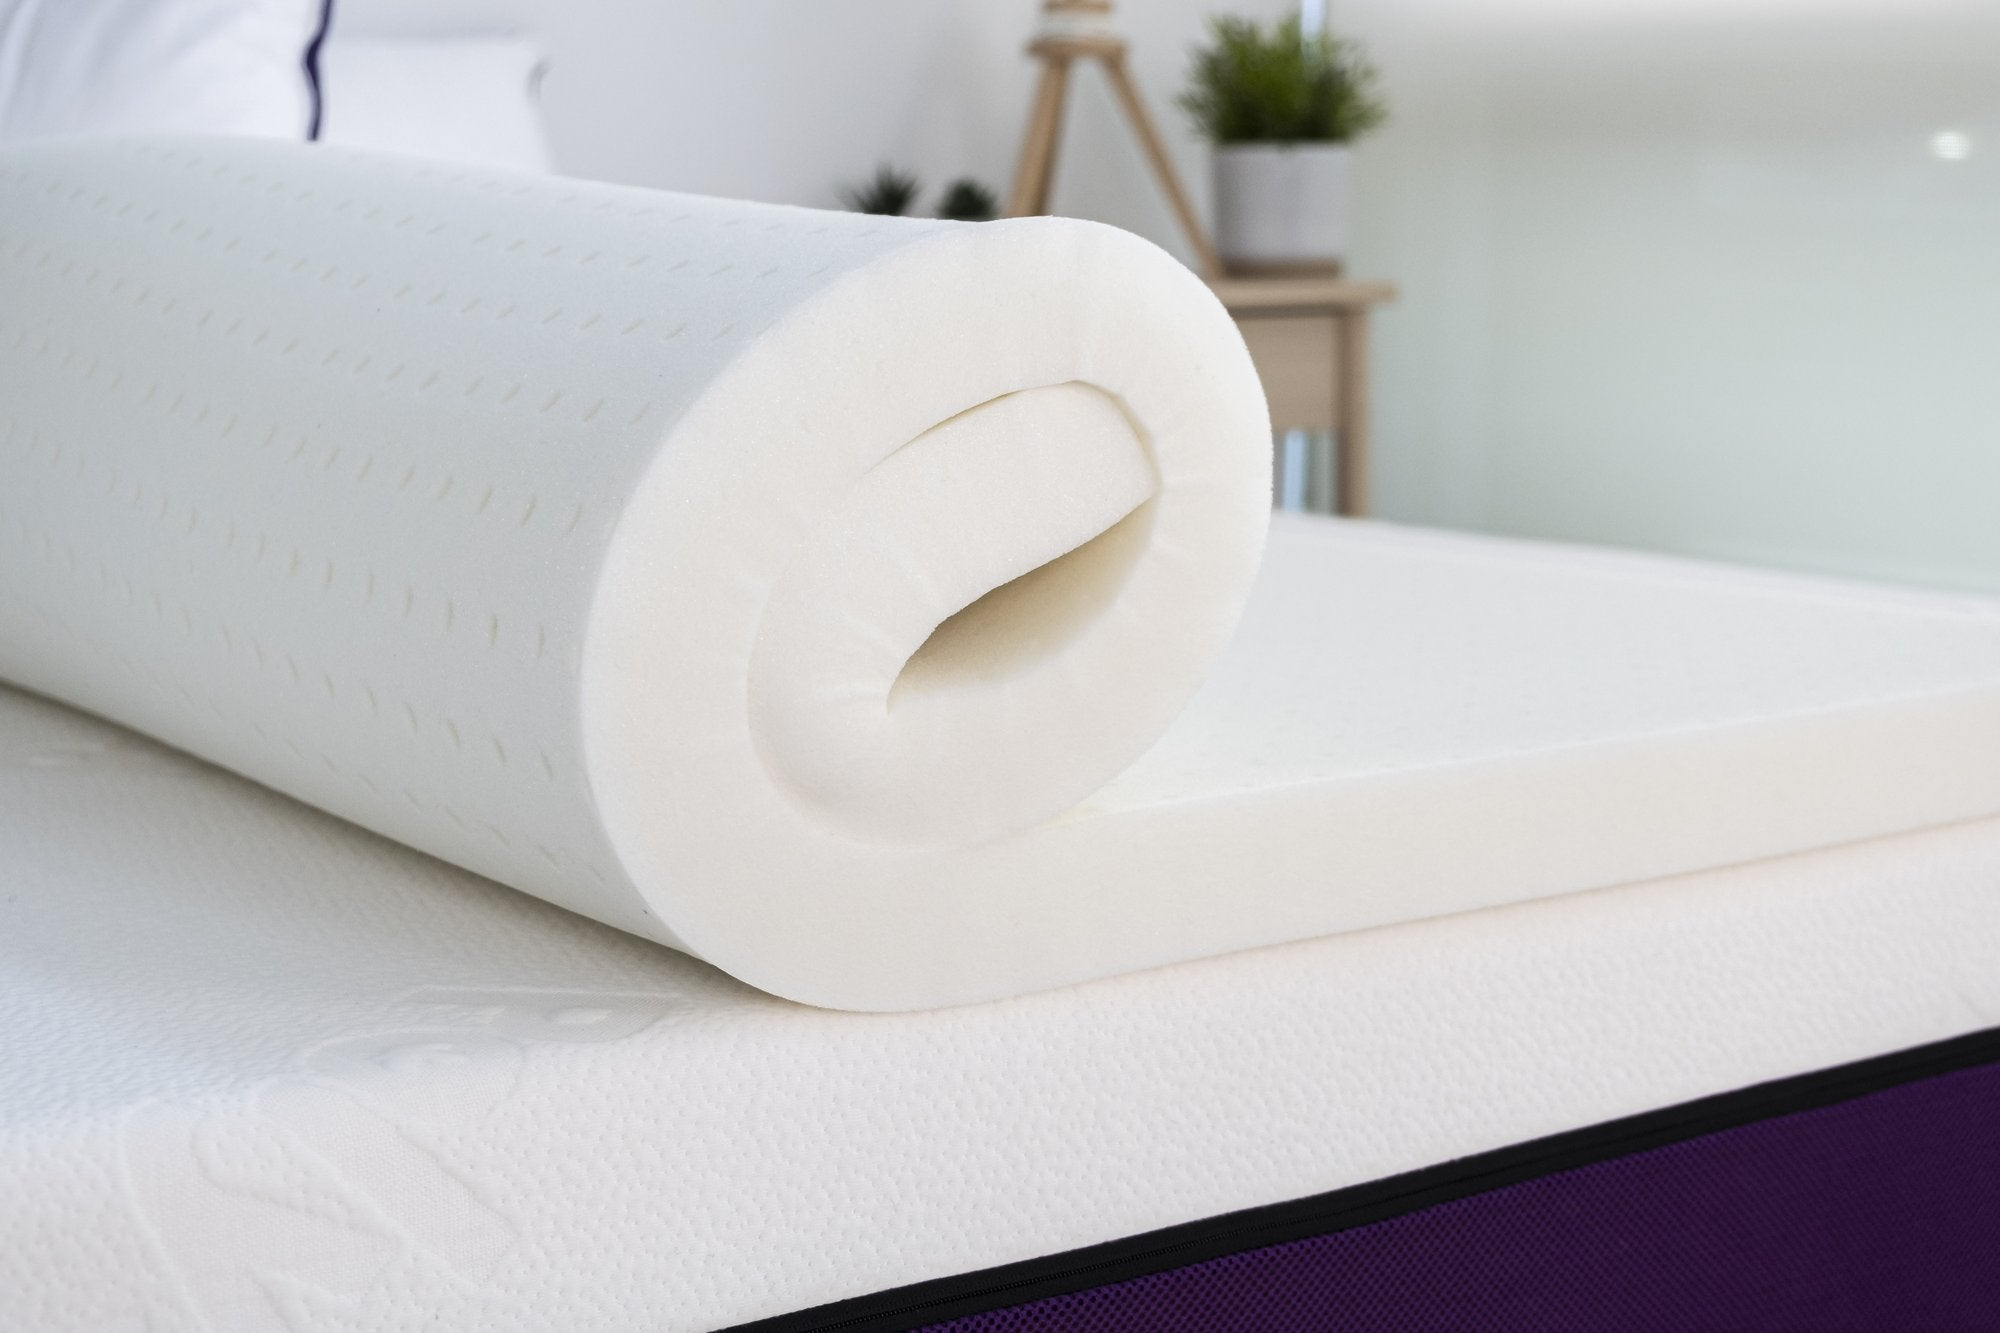 Polysleep antimicrobial mattress topper being rolled out on top of a mattress